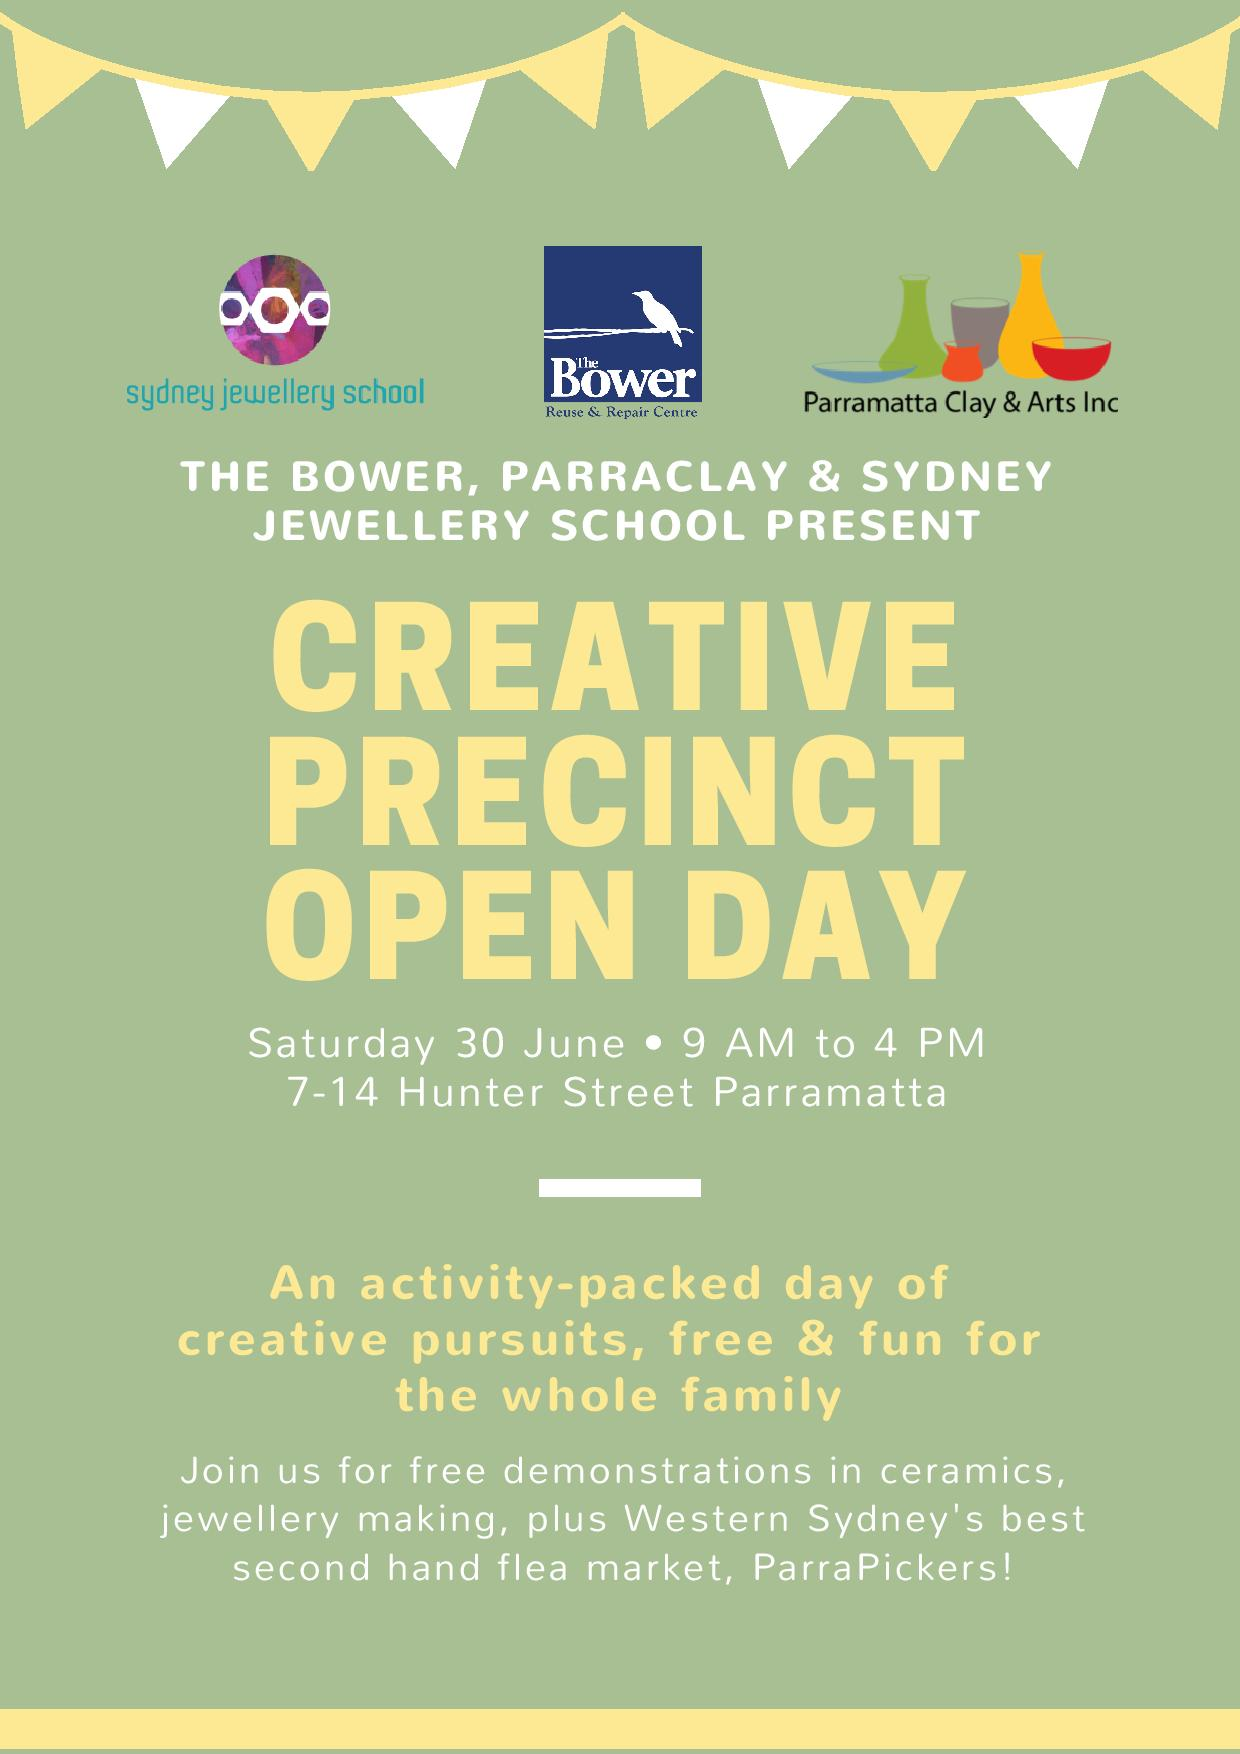 ParraPickers Creative Precinct Open Day